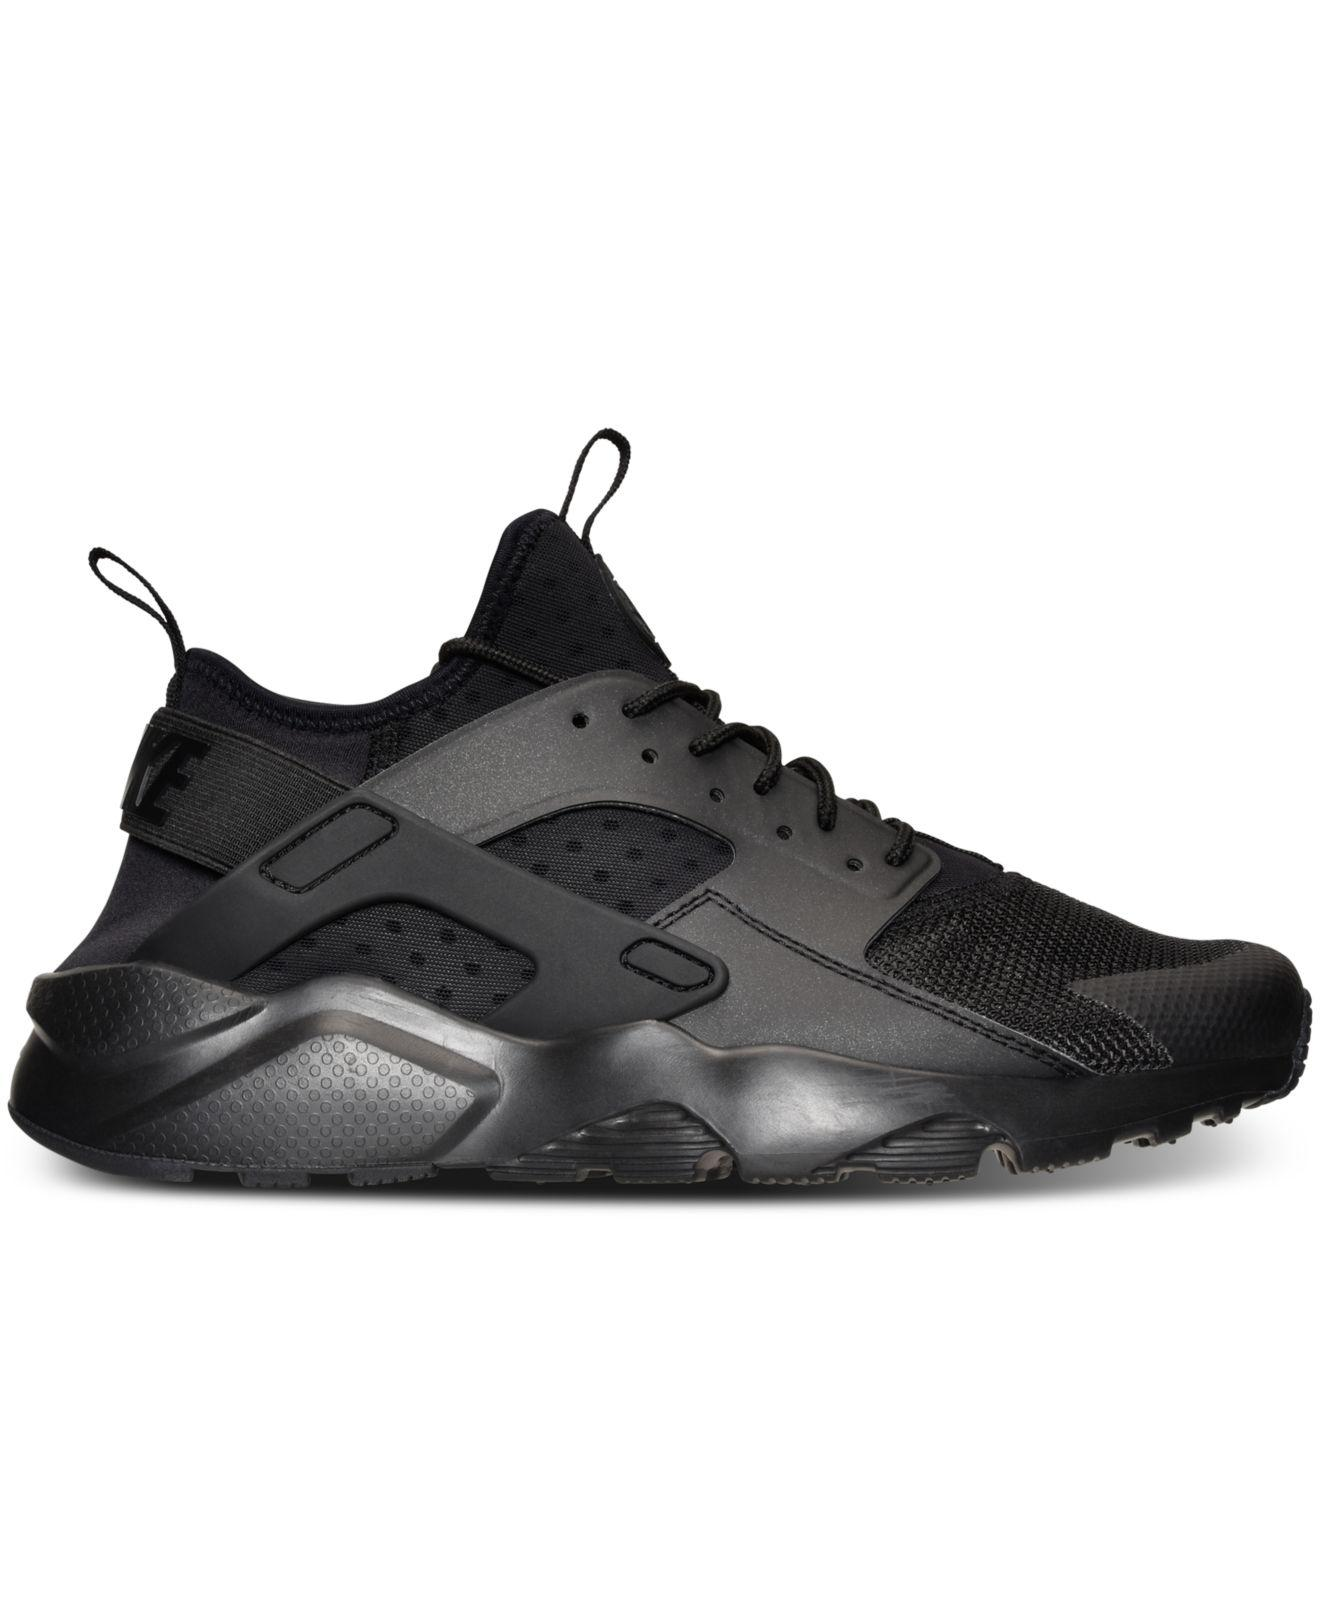 42b7ff21f58c Lyst - Nike Men s Air Huarache Run Ultra Running Sneakers From Finish Line  in Black for Men - Save 16%